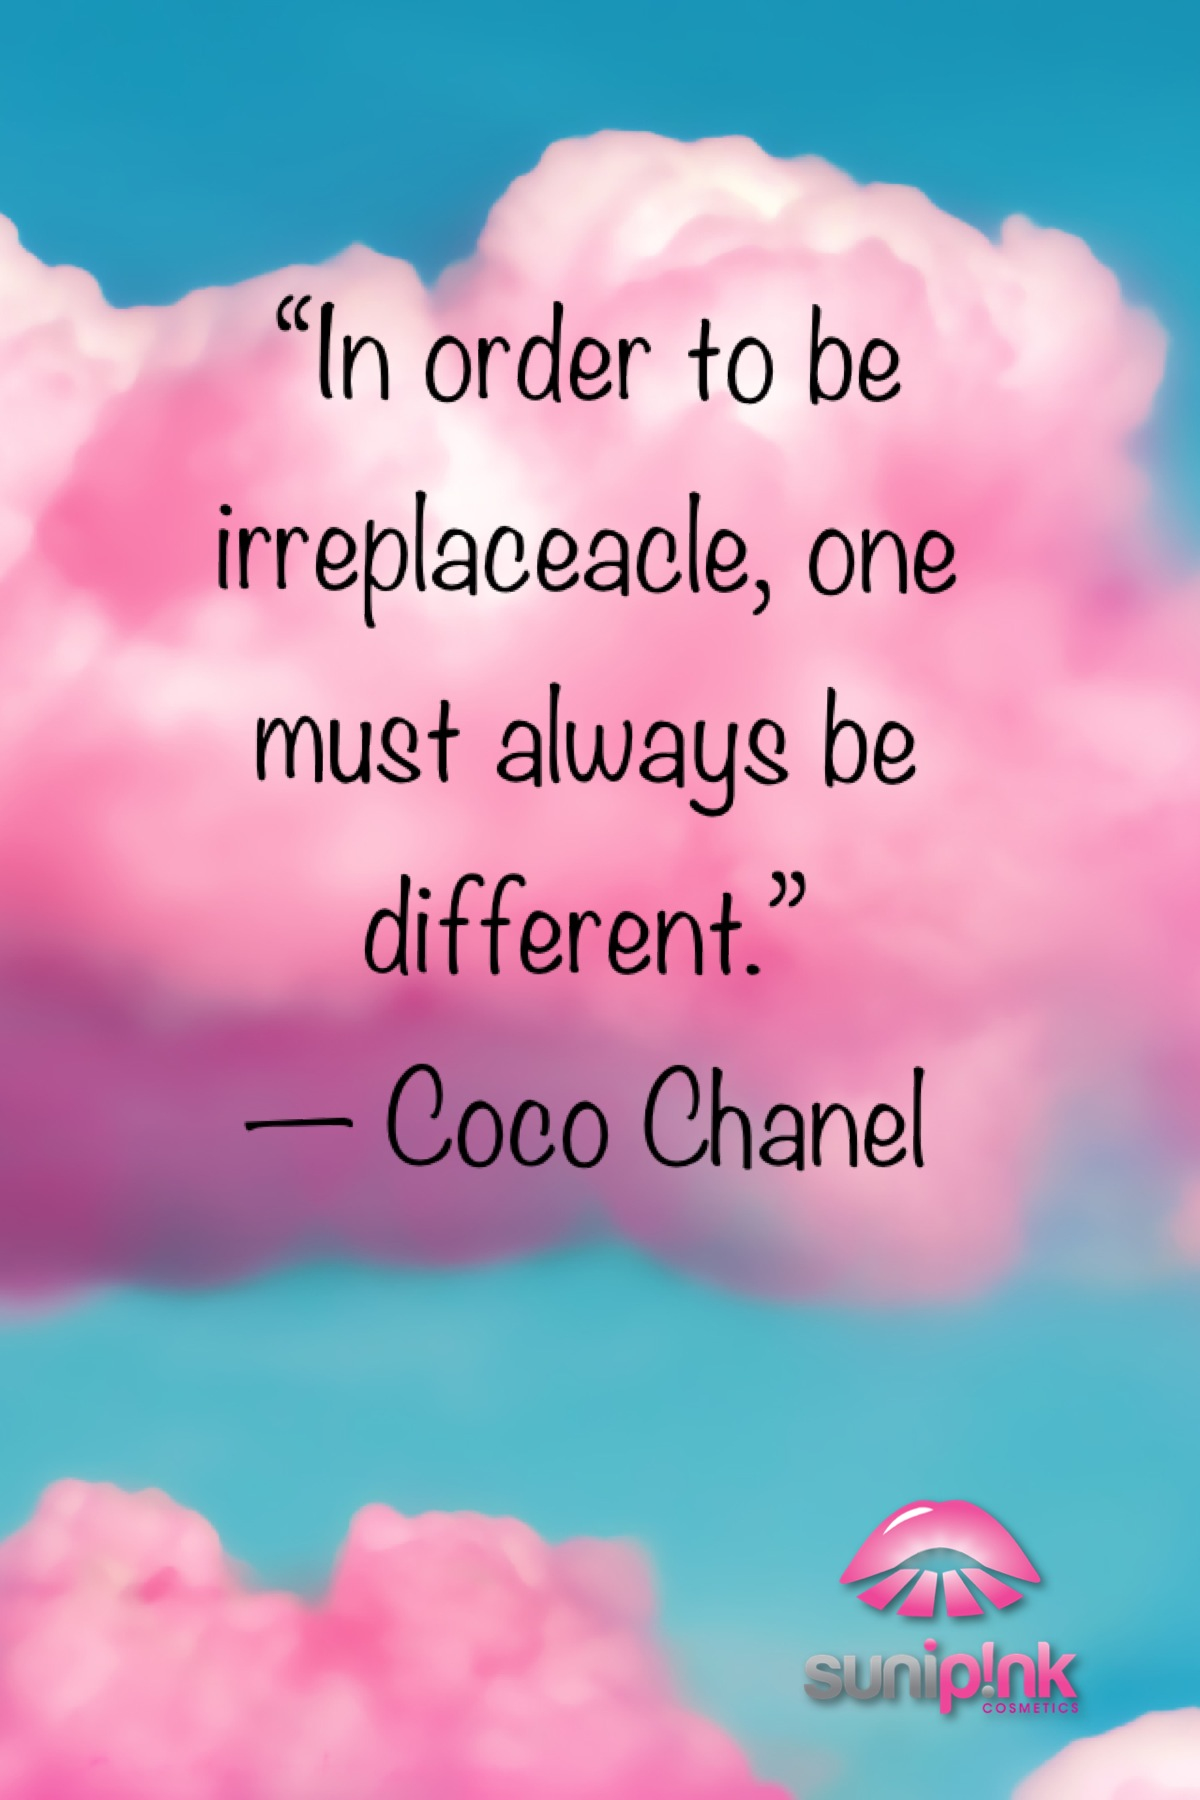 In order to be irreplaceable, one must always be different. Coco Chanel